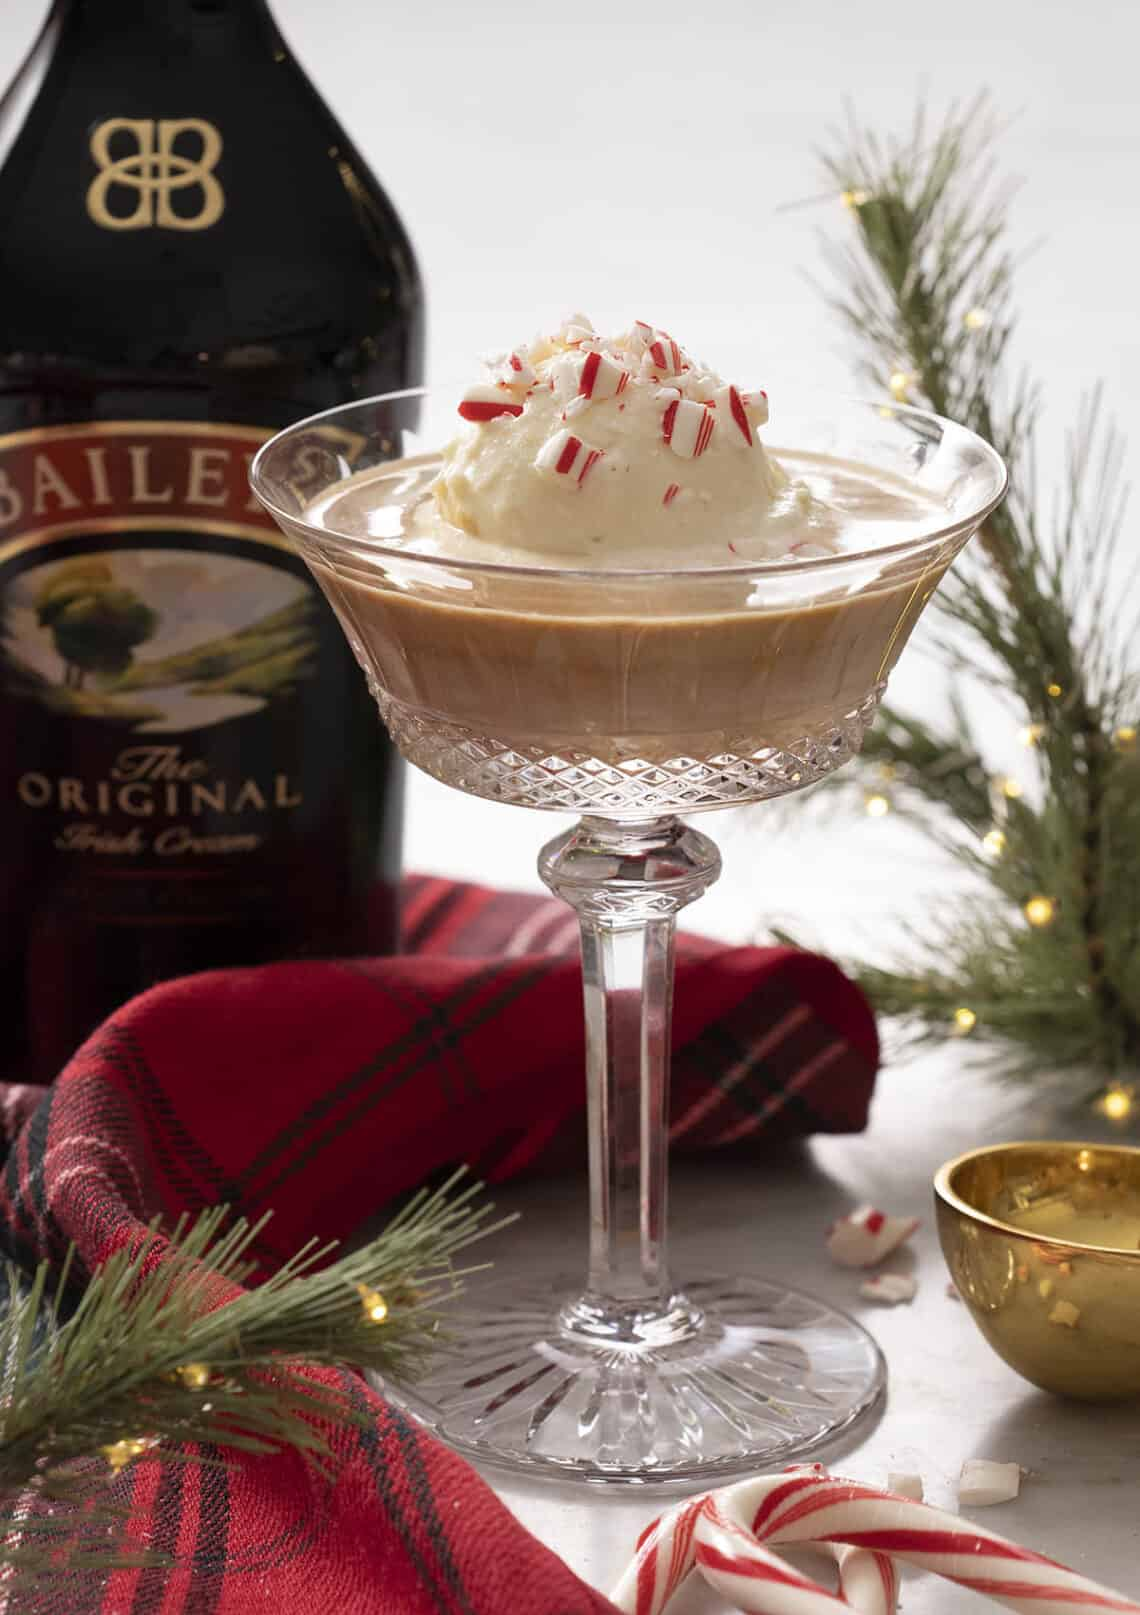 A Baileys affogato in a crystal glass with crushed candy cane on top.